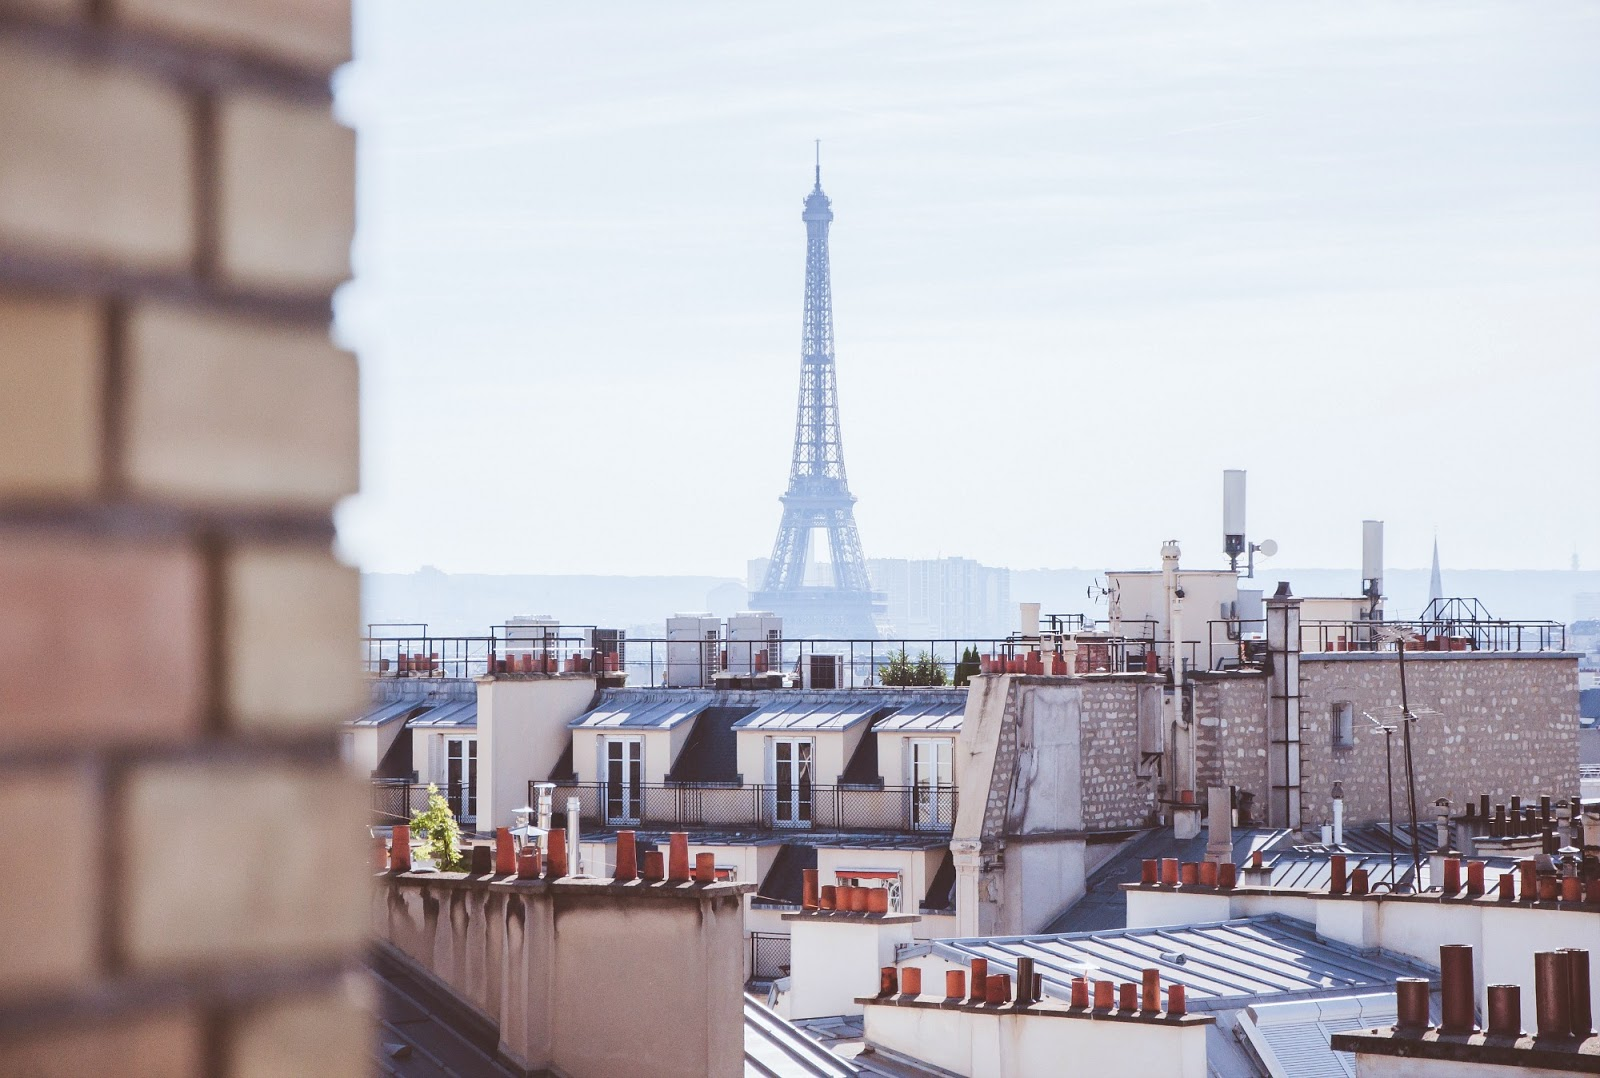 travel bucket list, bucket list travel, summer bucket list,bucket list vacations, bucket list for couples, cool bucket list ideas, spring break destinations, where to go for spring break, spring break trips, paris, paris rooftops